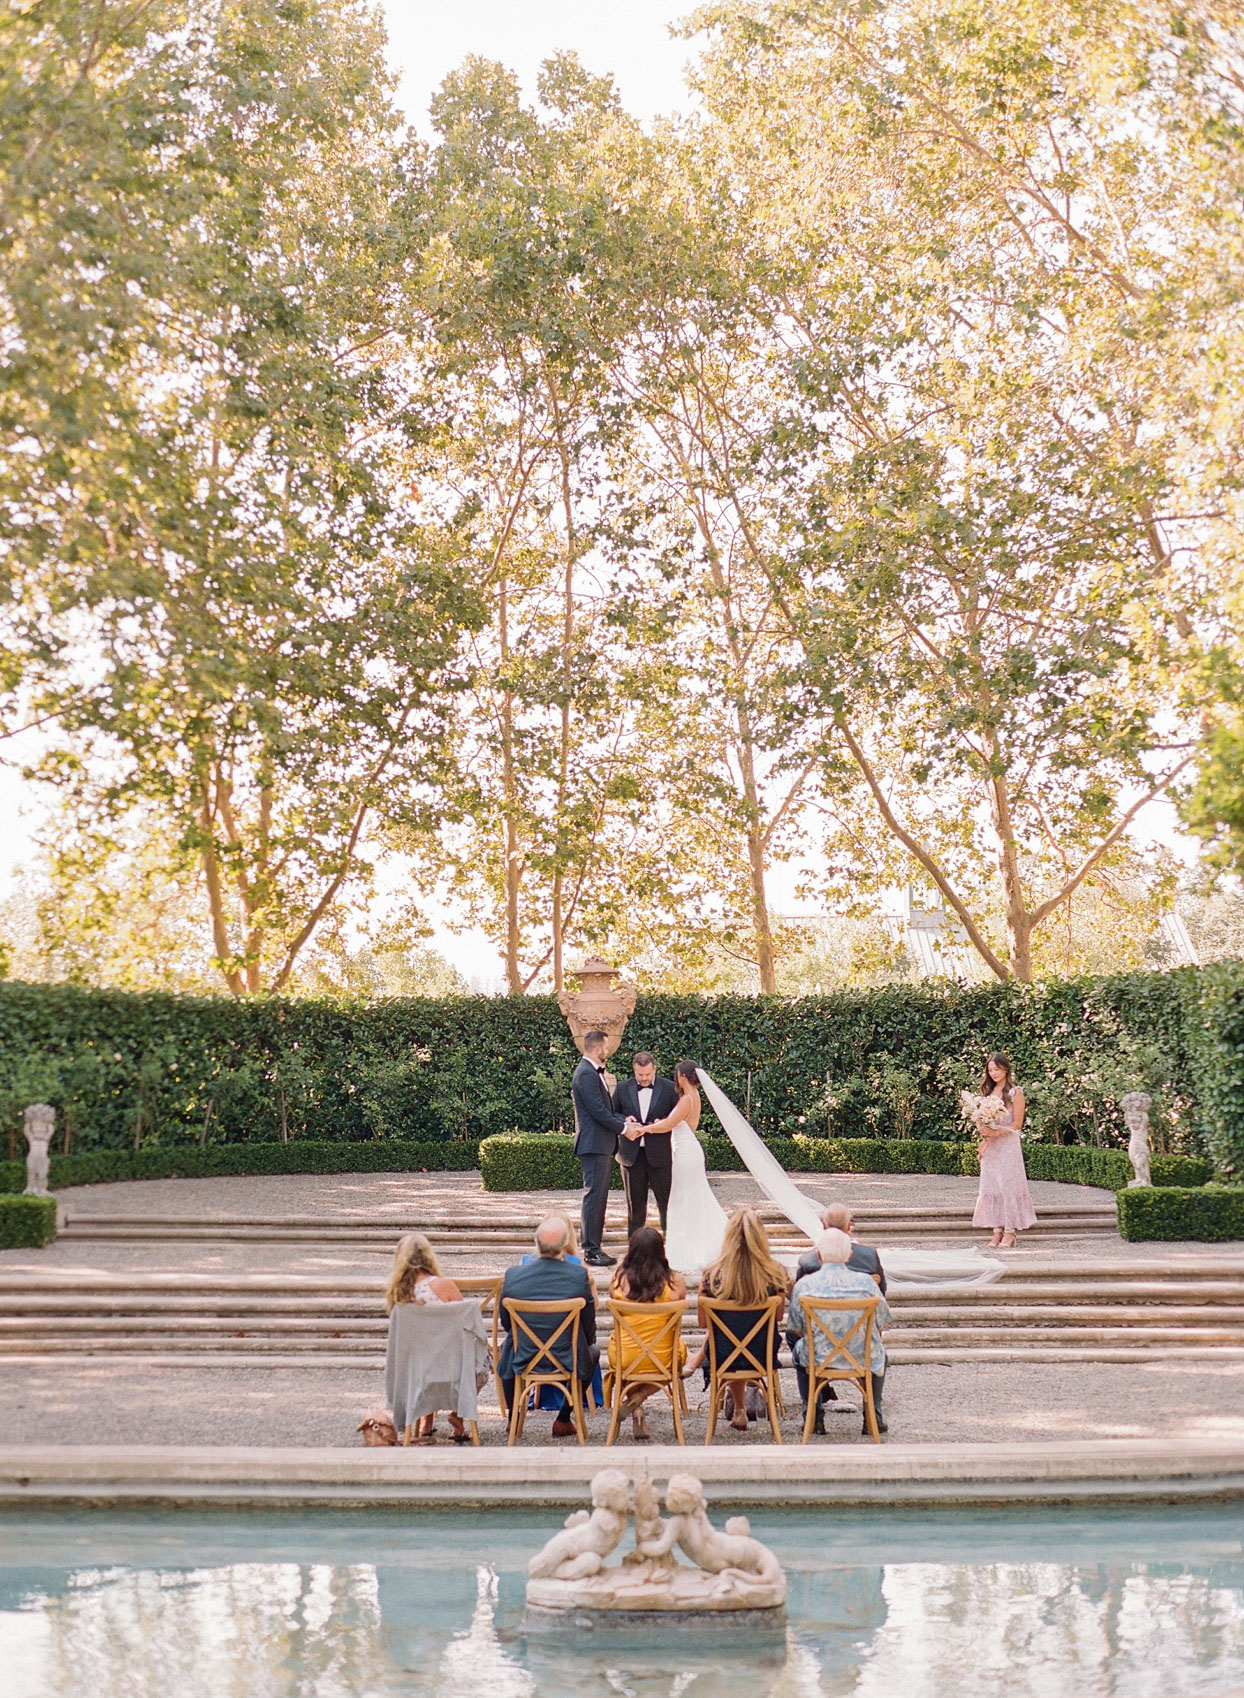 wedding ceremony outdoor garden with water feature and guests in distanced chairs